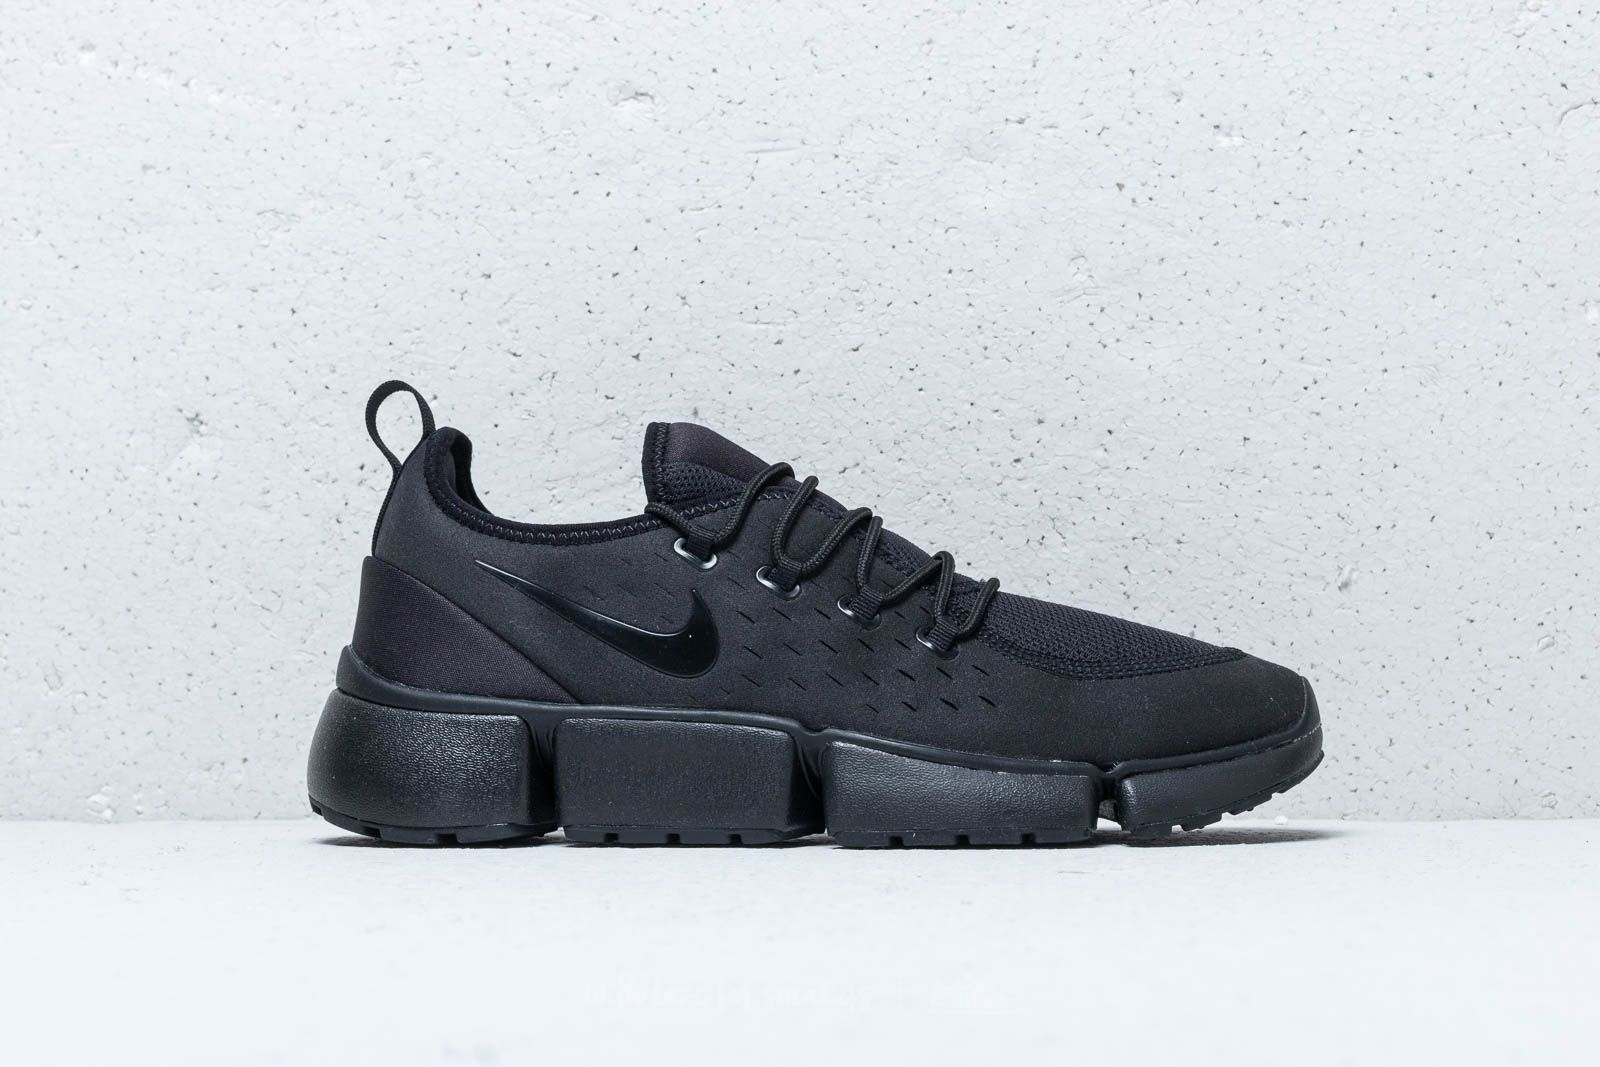 muerto Girar Montón de  Men's shoes Nike Pocket Fly DM Black/ Black-Black